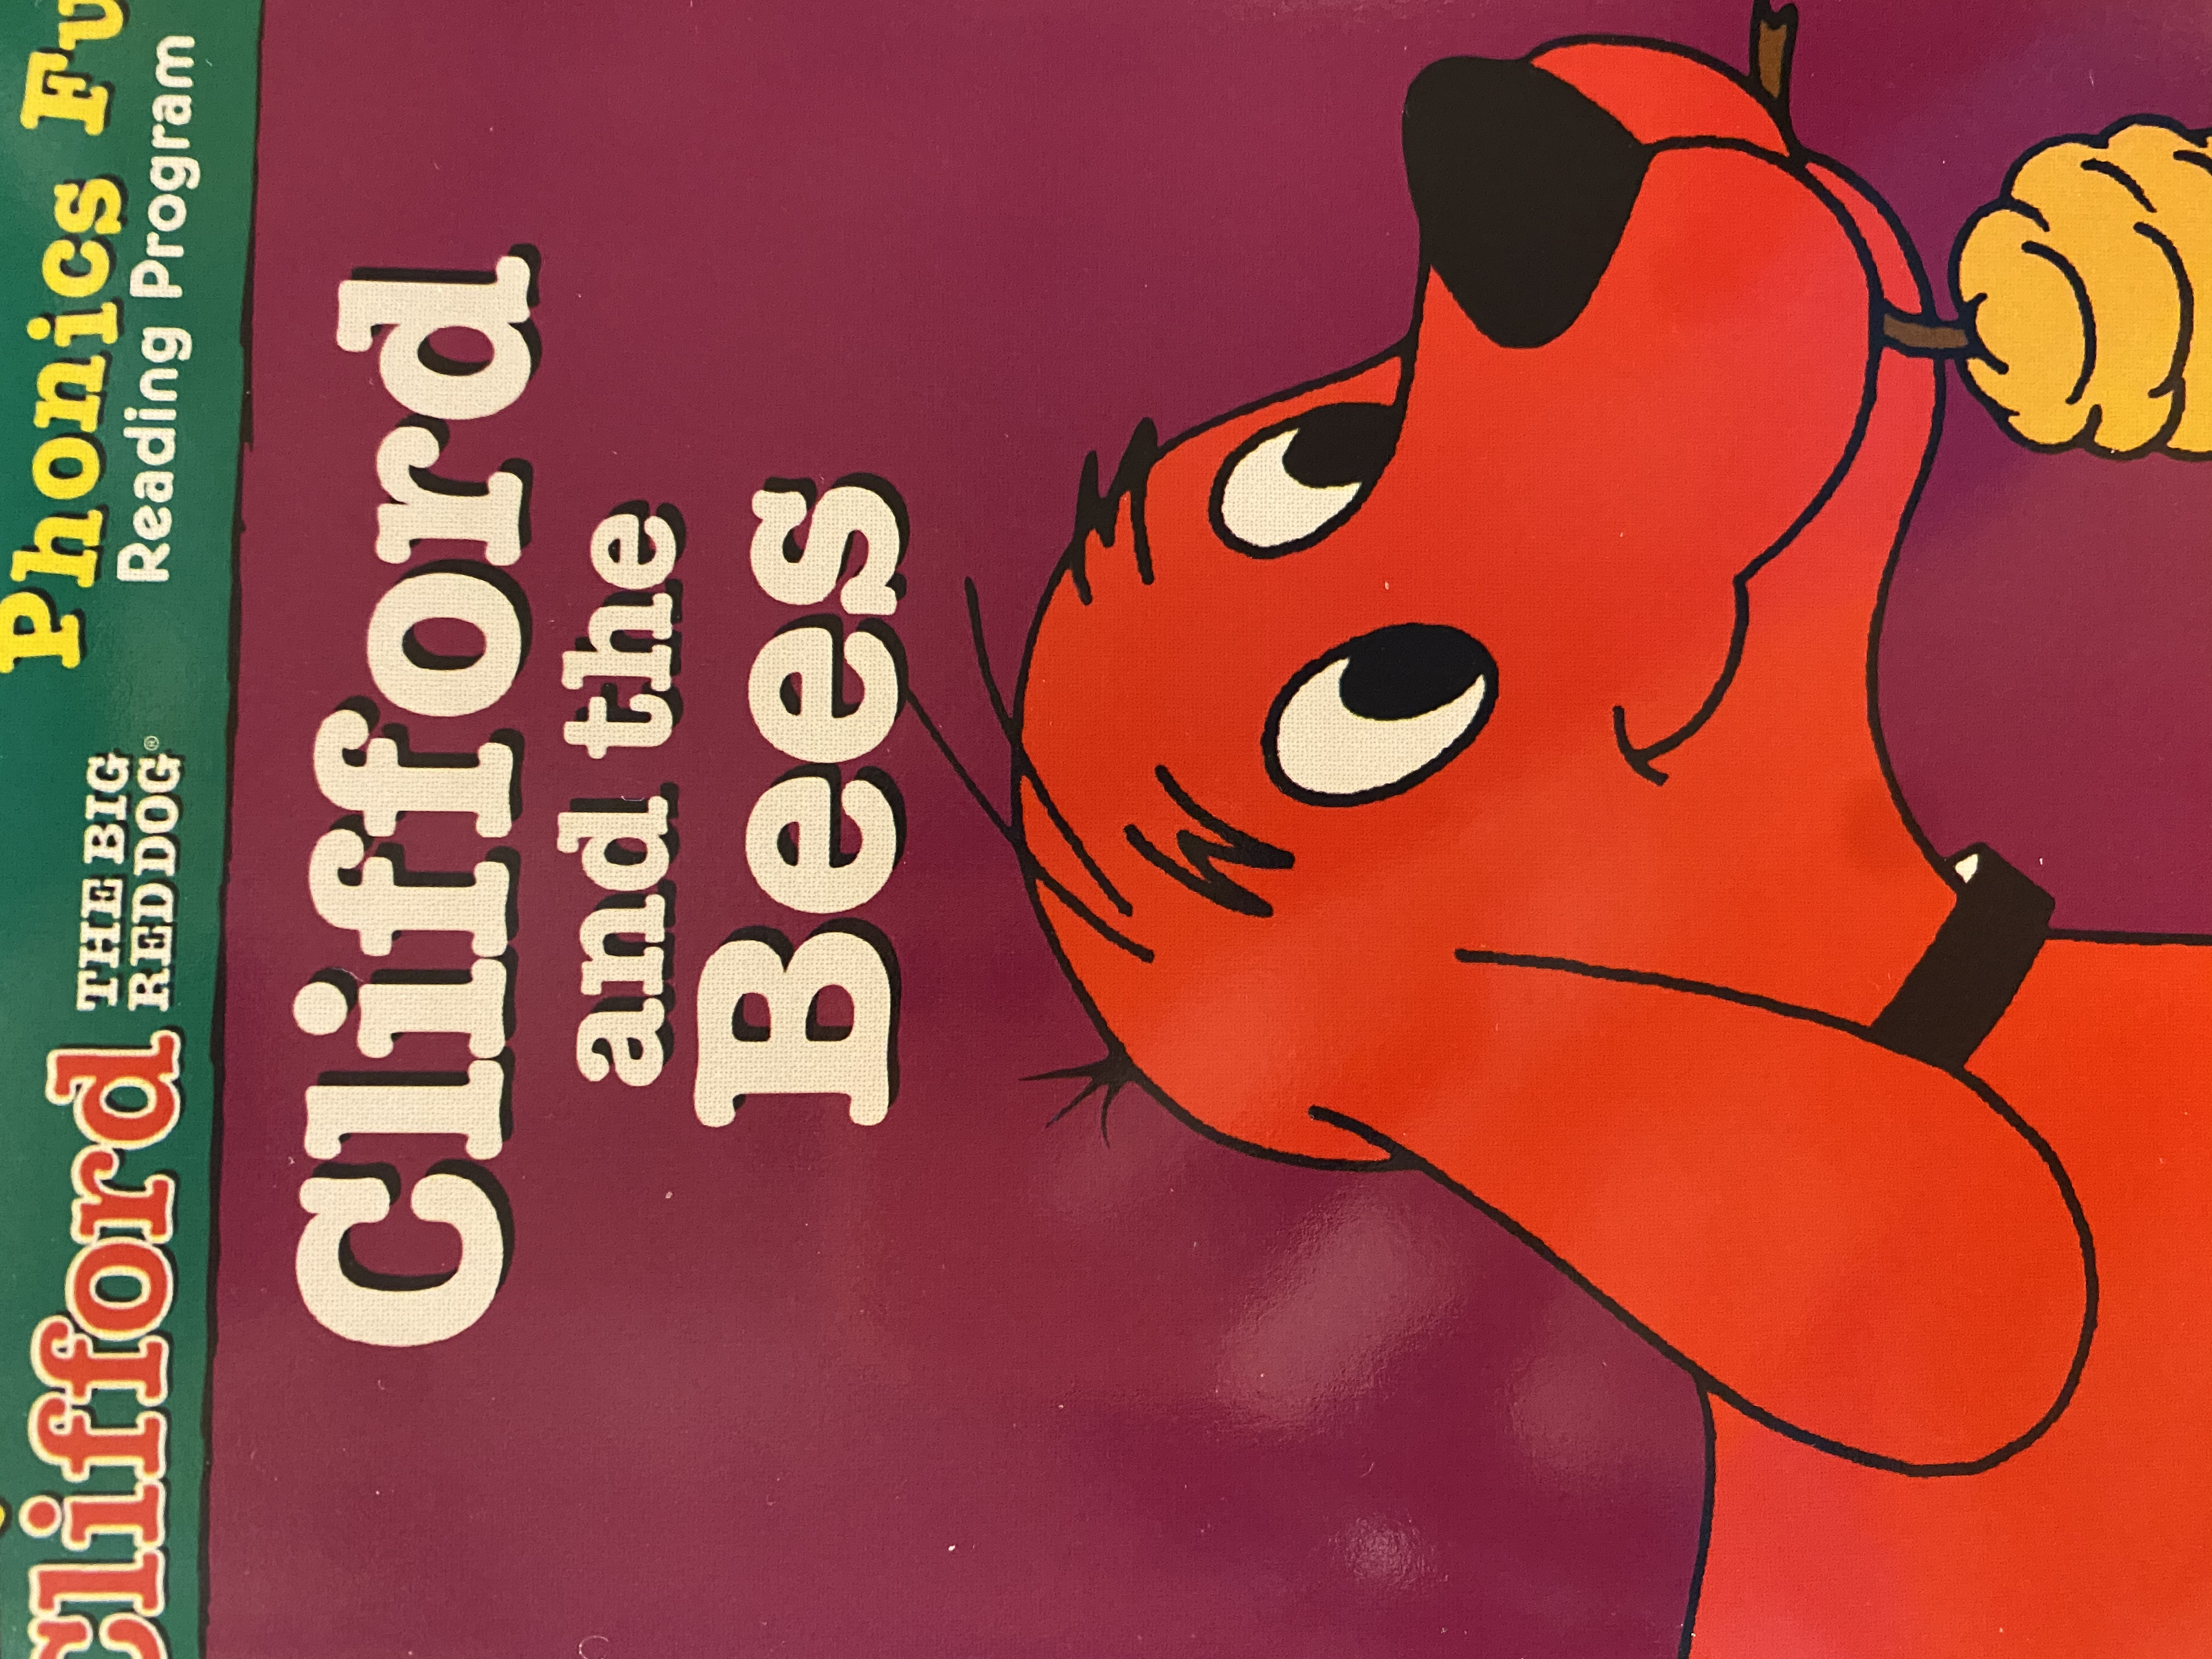 S2-283/ Clifford and the bees/ Clifford the big red dog/ pack 3